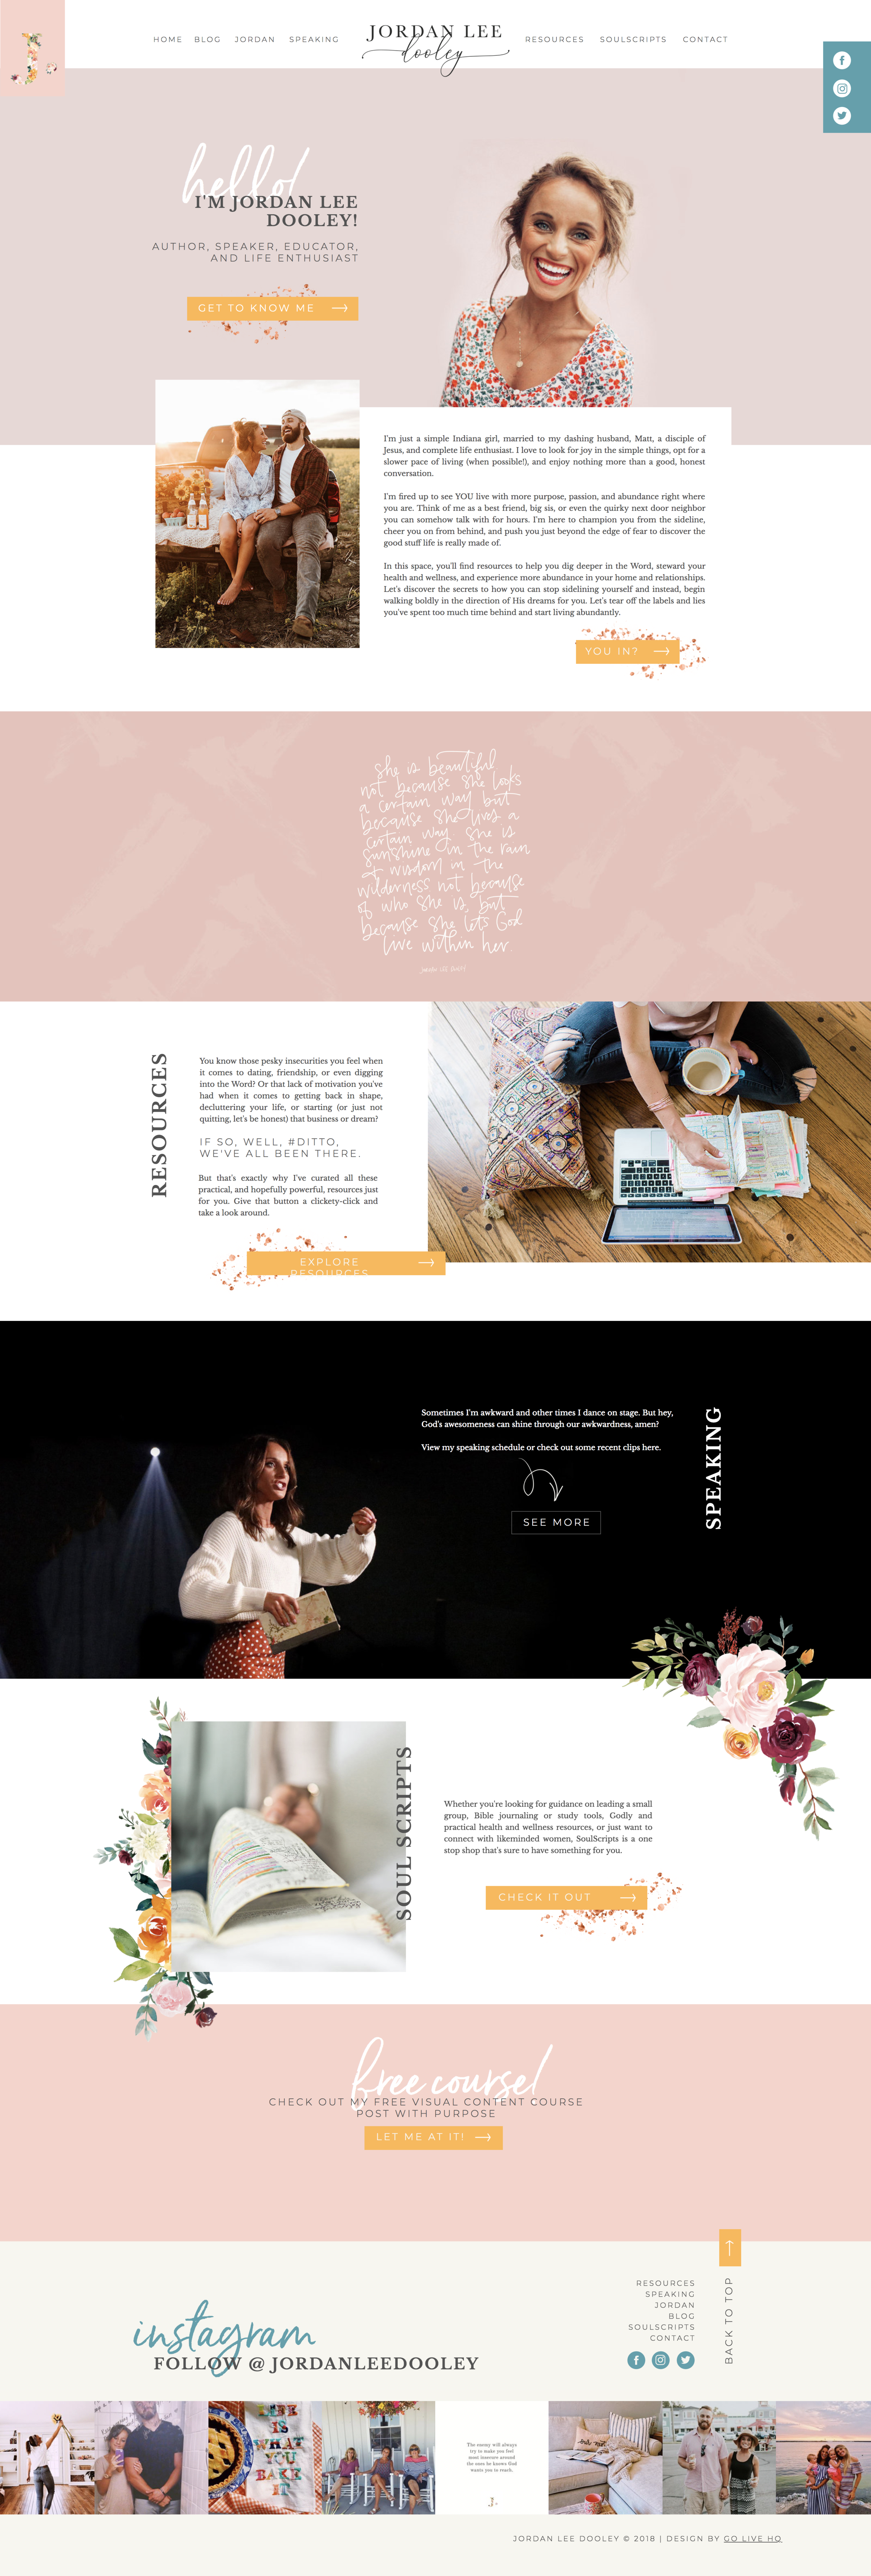 Creative and Colorful Website Design for Christian Speaker | Design by Go Live HQ